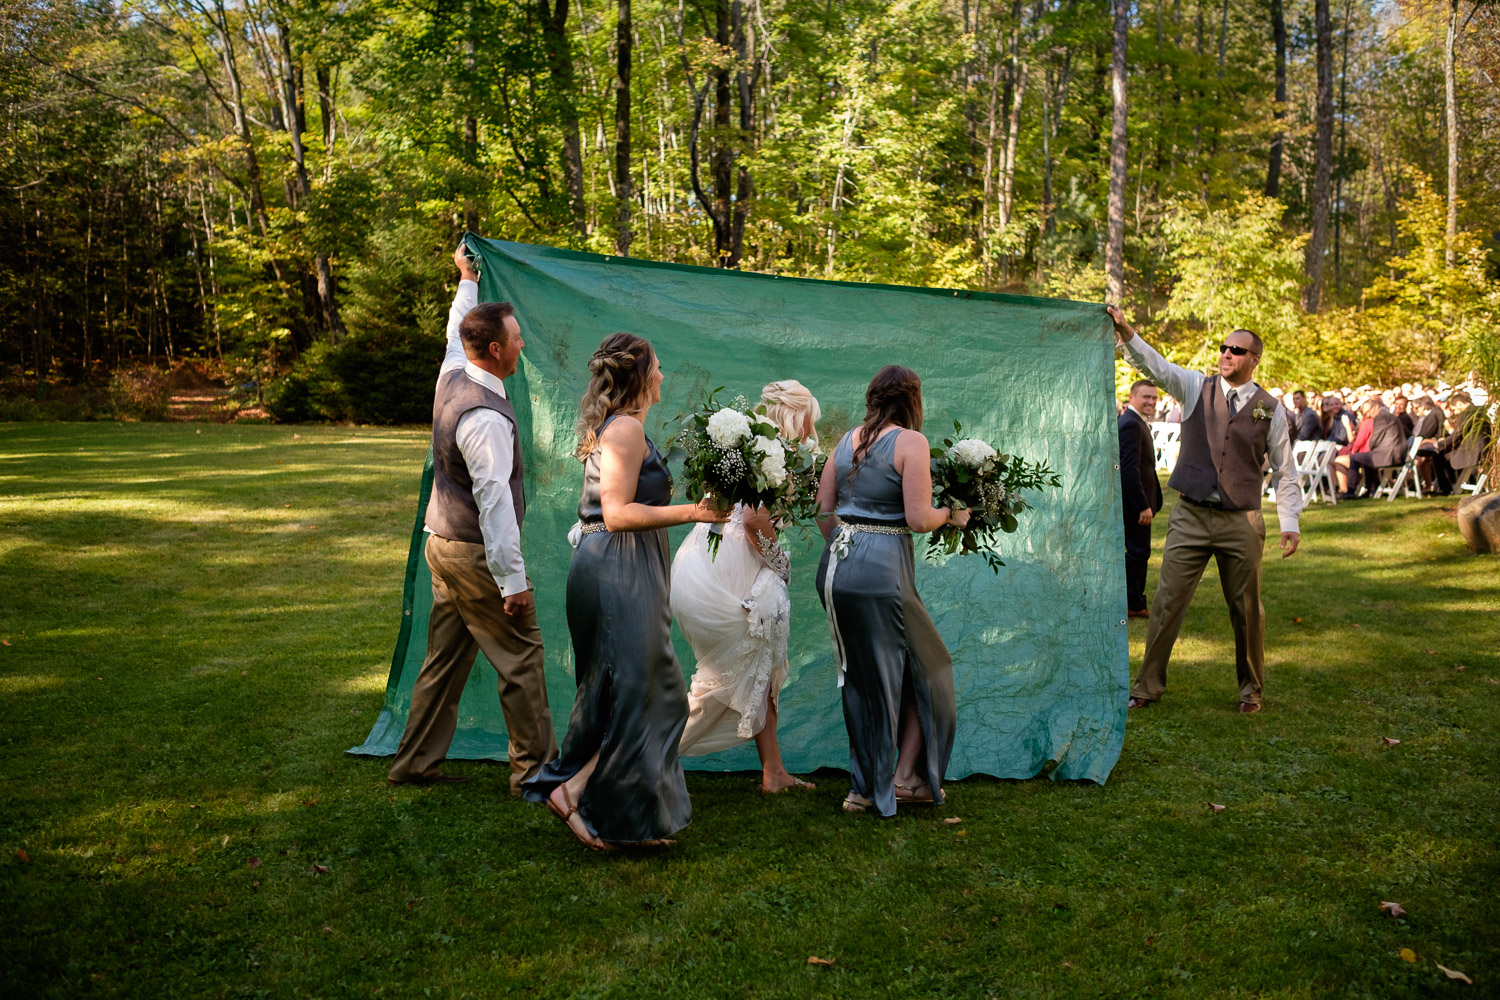 A bride sneaks past her wedding guests before her backyard outdoor wedding ceremony at their private residence in Muskoka, Ontario by Toronto wedding photographer Scott Williams.